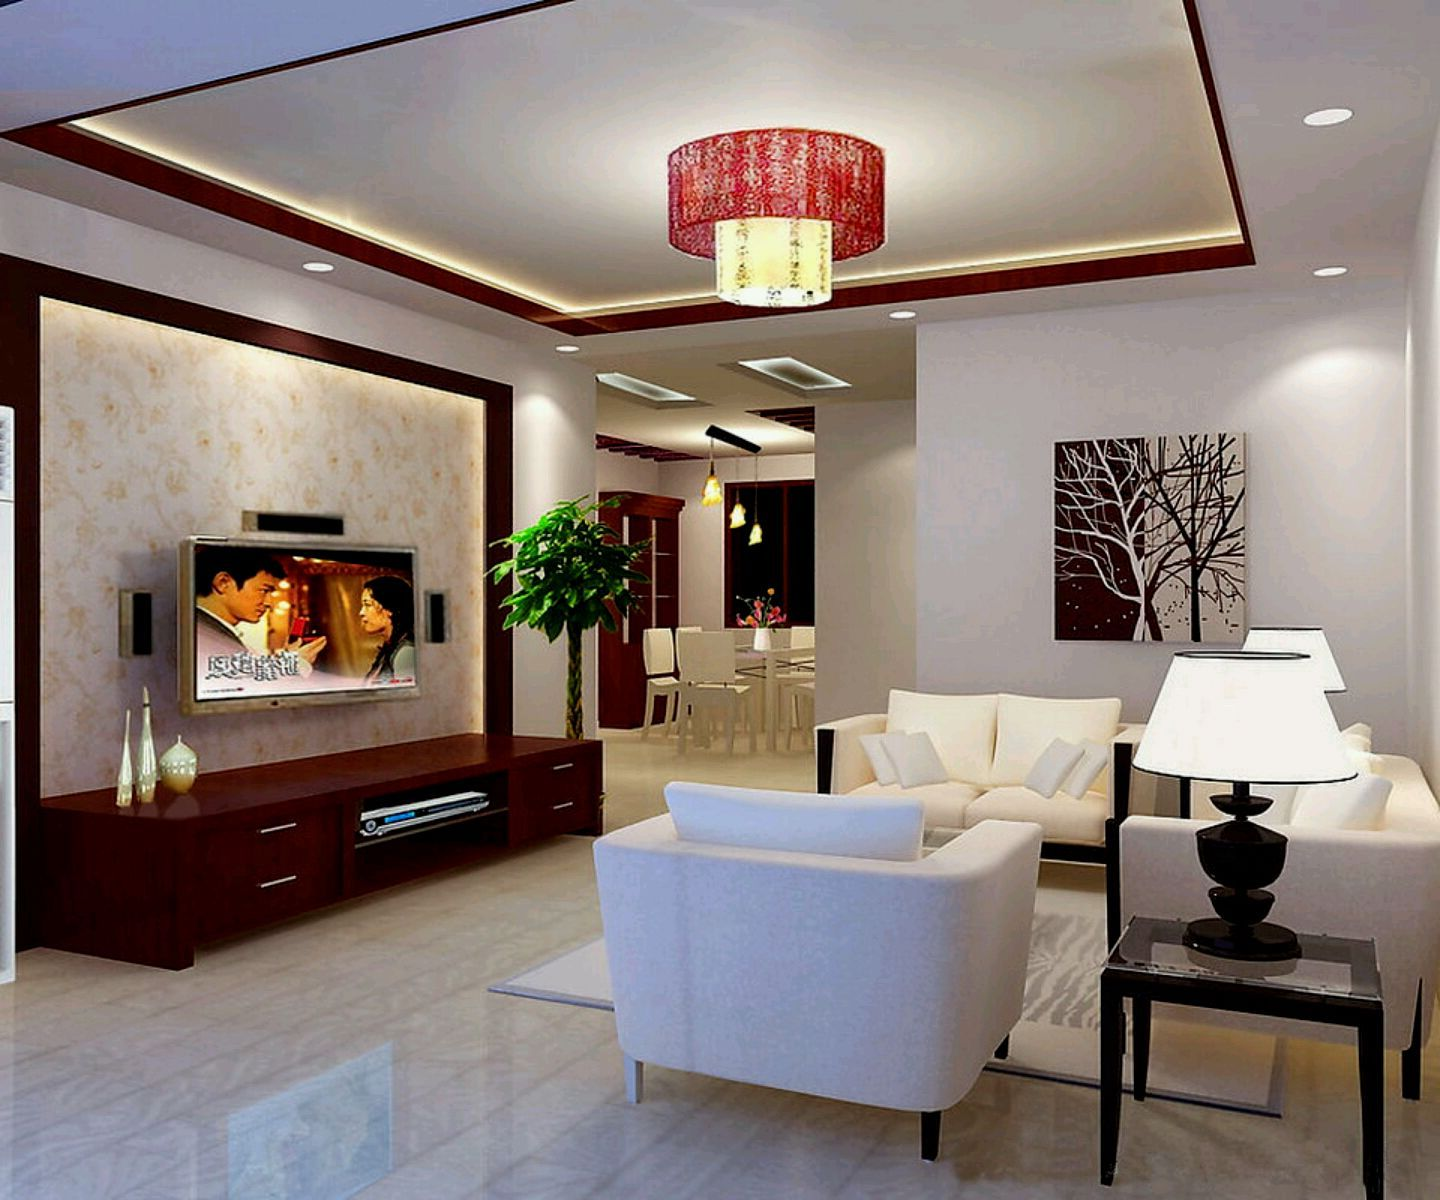 Ceiling design for drawing room in pakistan ceiling for Room design in pakistan